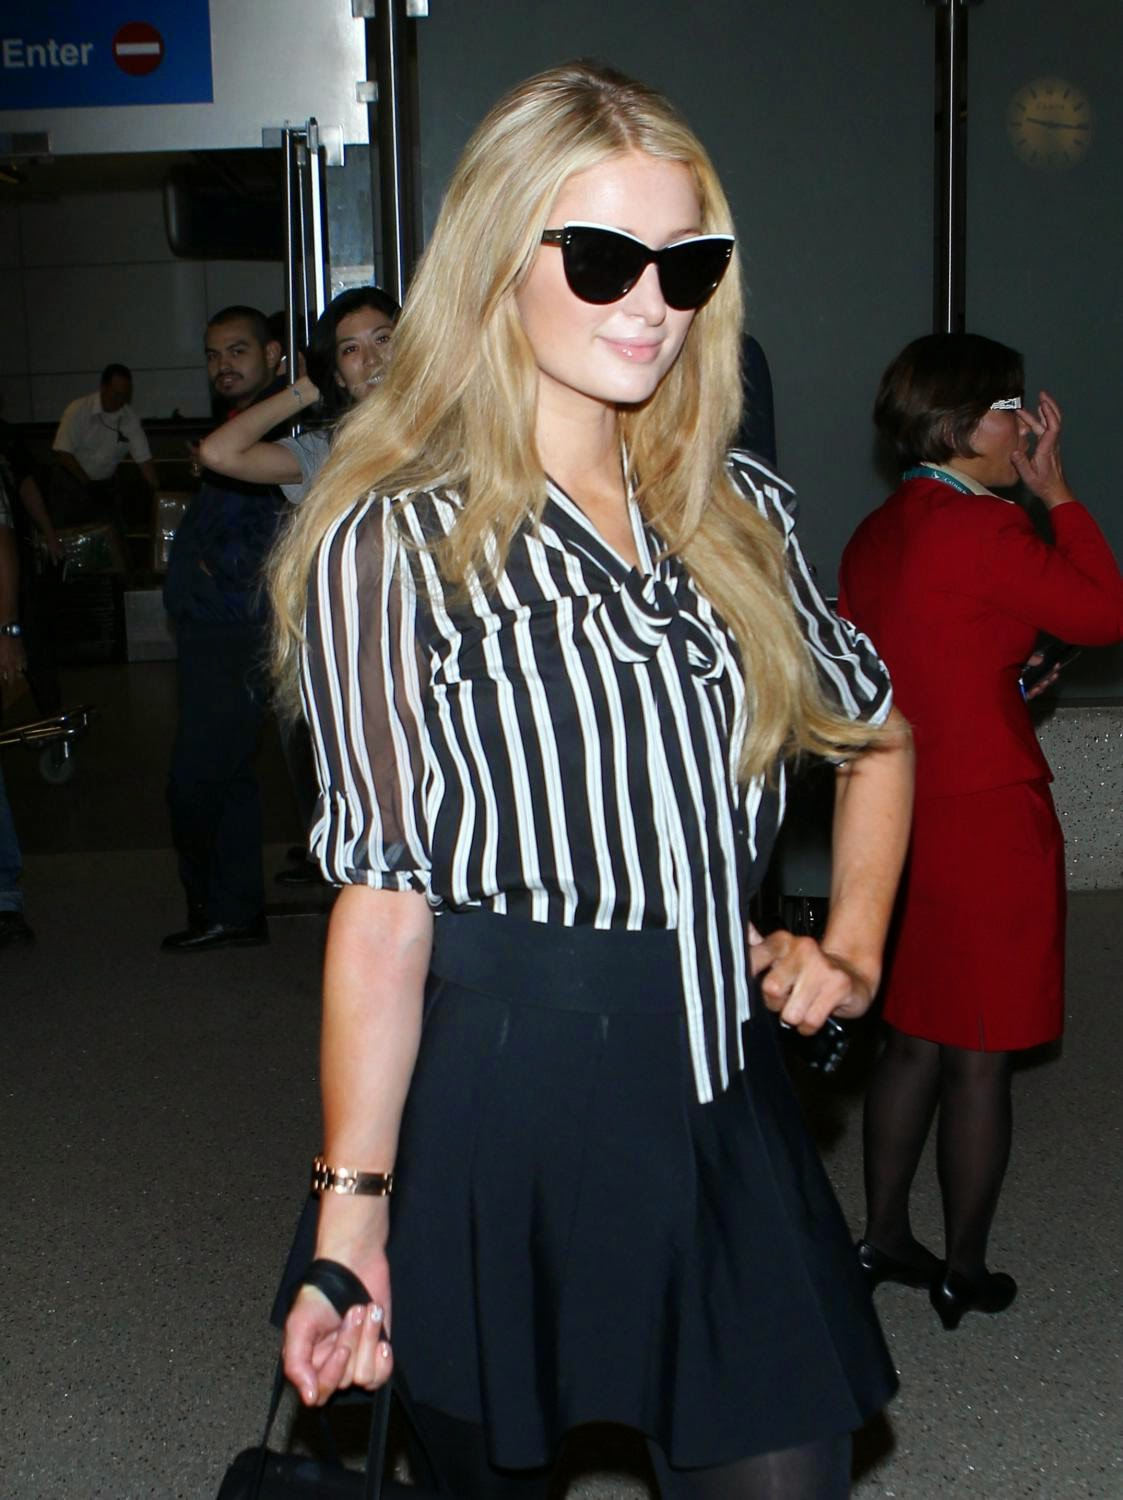 Socialite, Television Personality, Model, Actress, Singer @ Paris Hilton arrives back at LAX